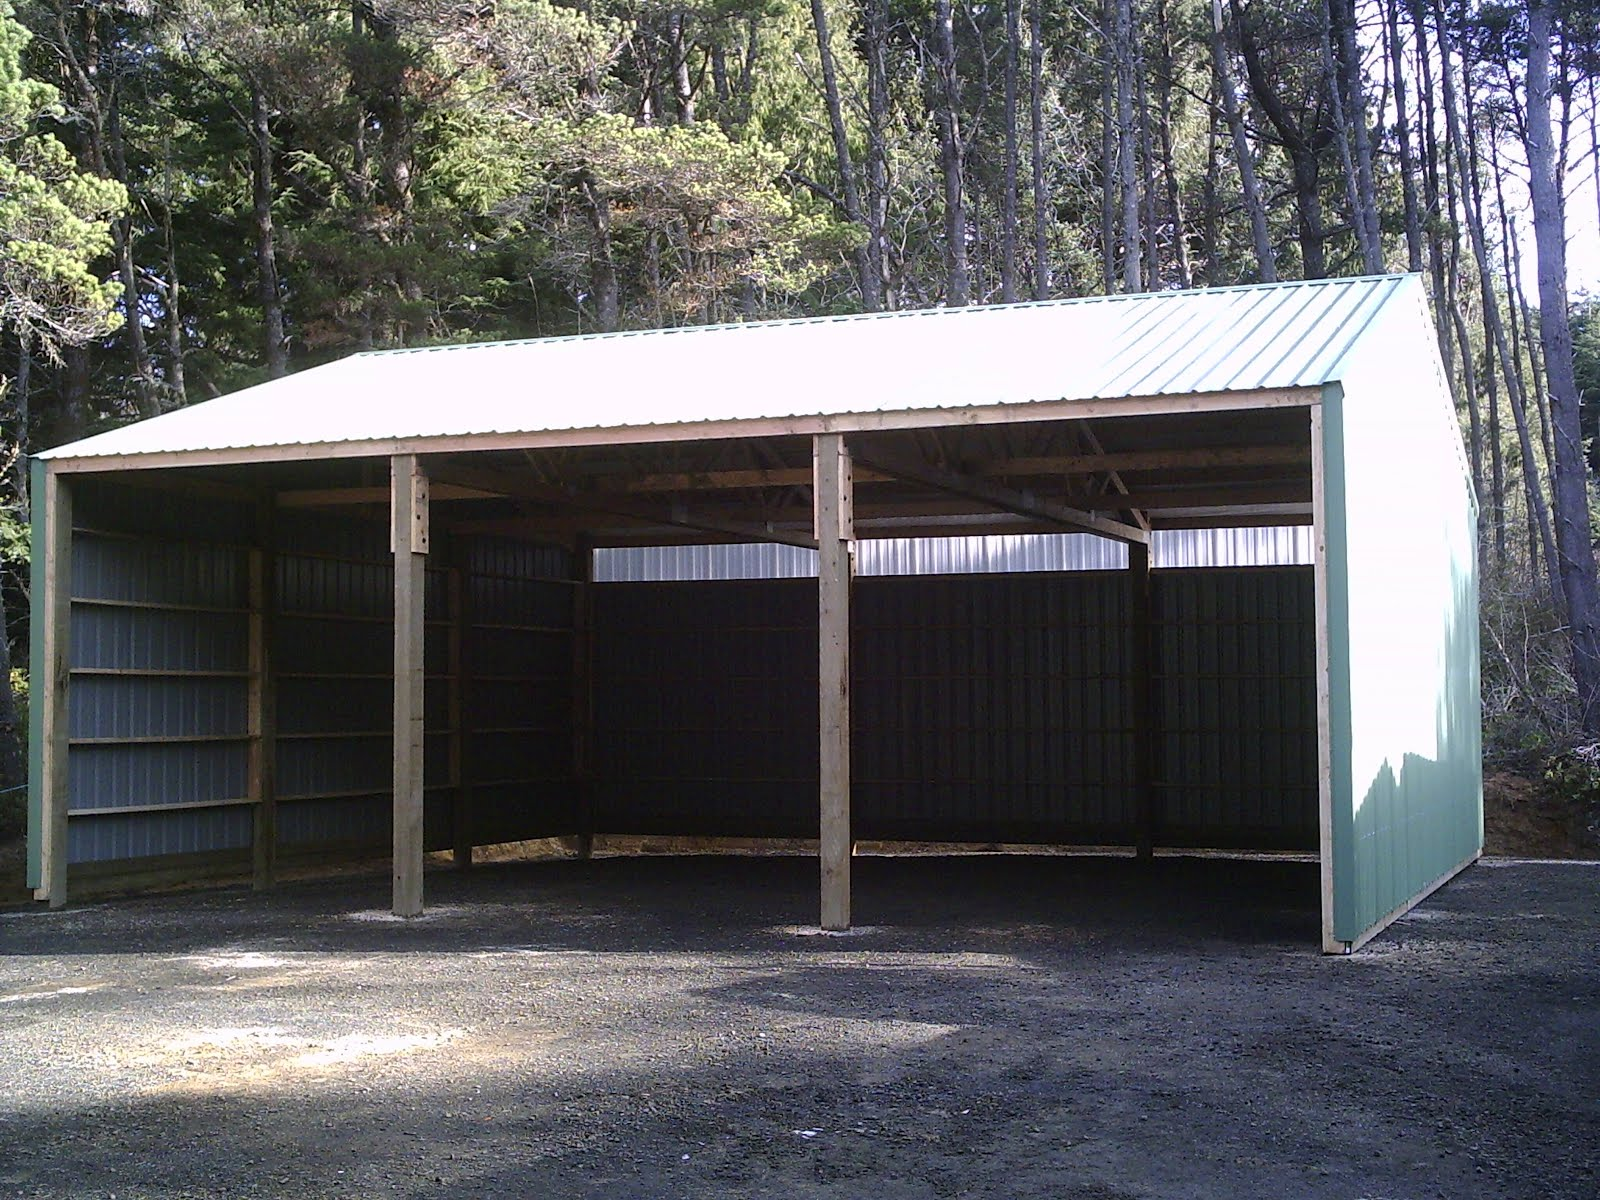 3 Sided Equipment Shed Pictures To Pin On Pinterest